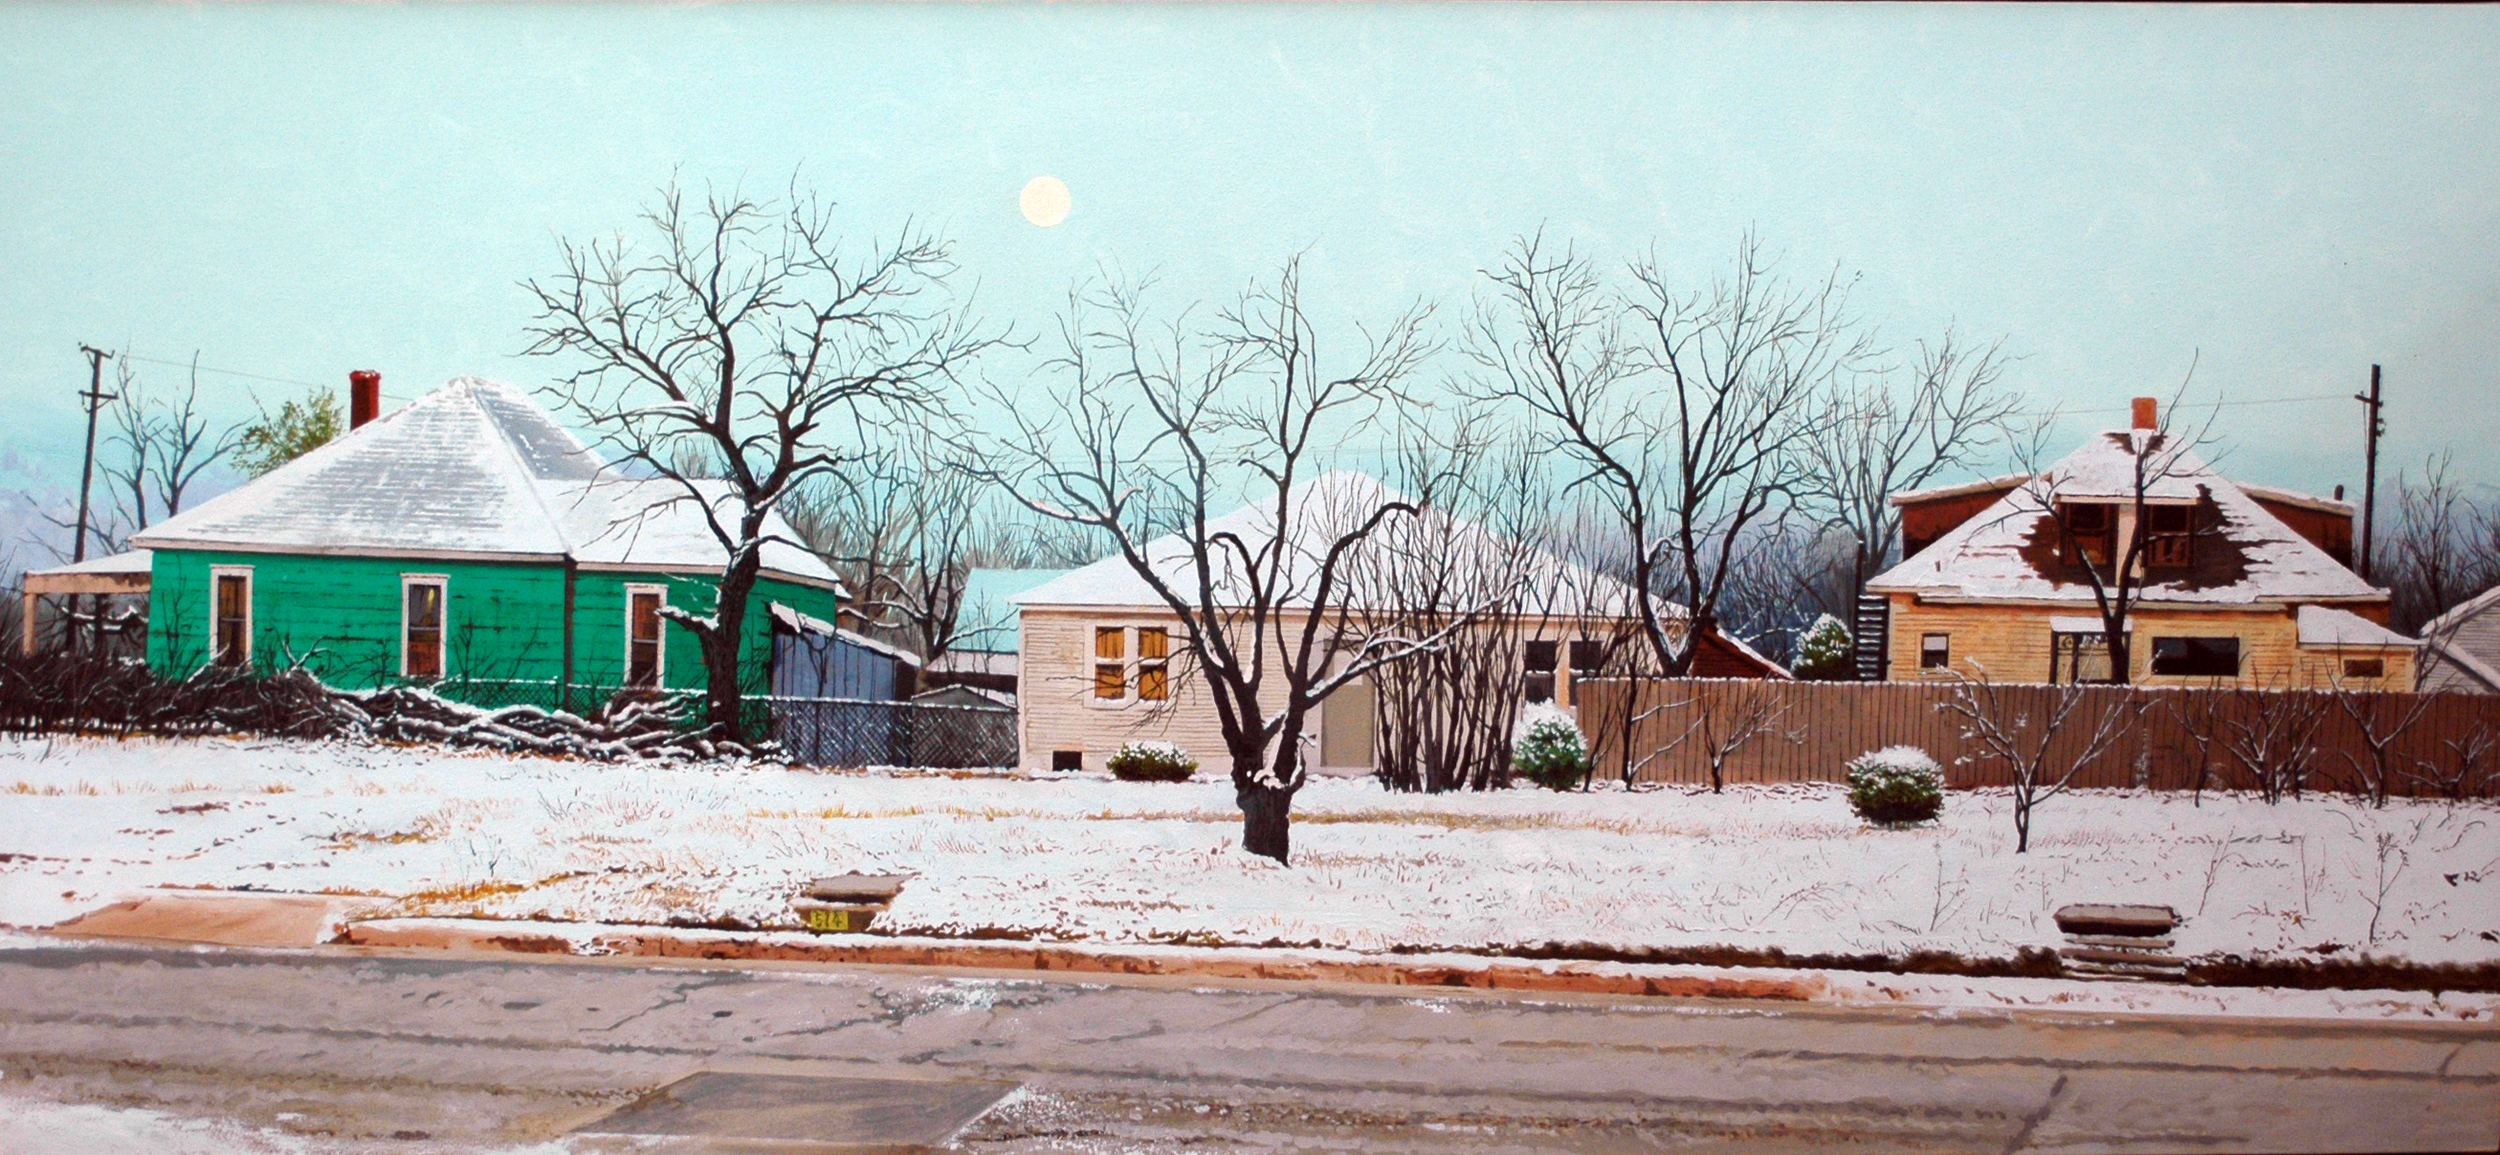 """Daniel Blagg,  Winter Solstice,  oil on canvas, 32 x 67"""" $10,000. Contact Artspace111 to purchase."""